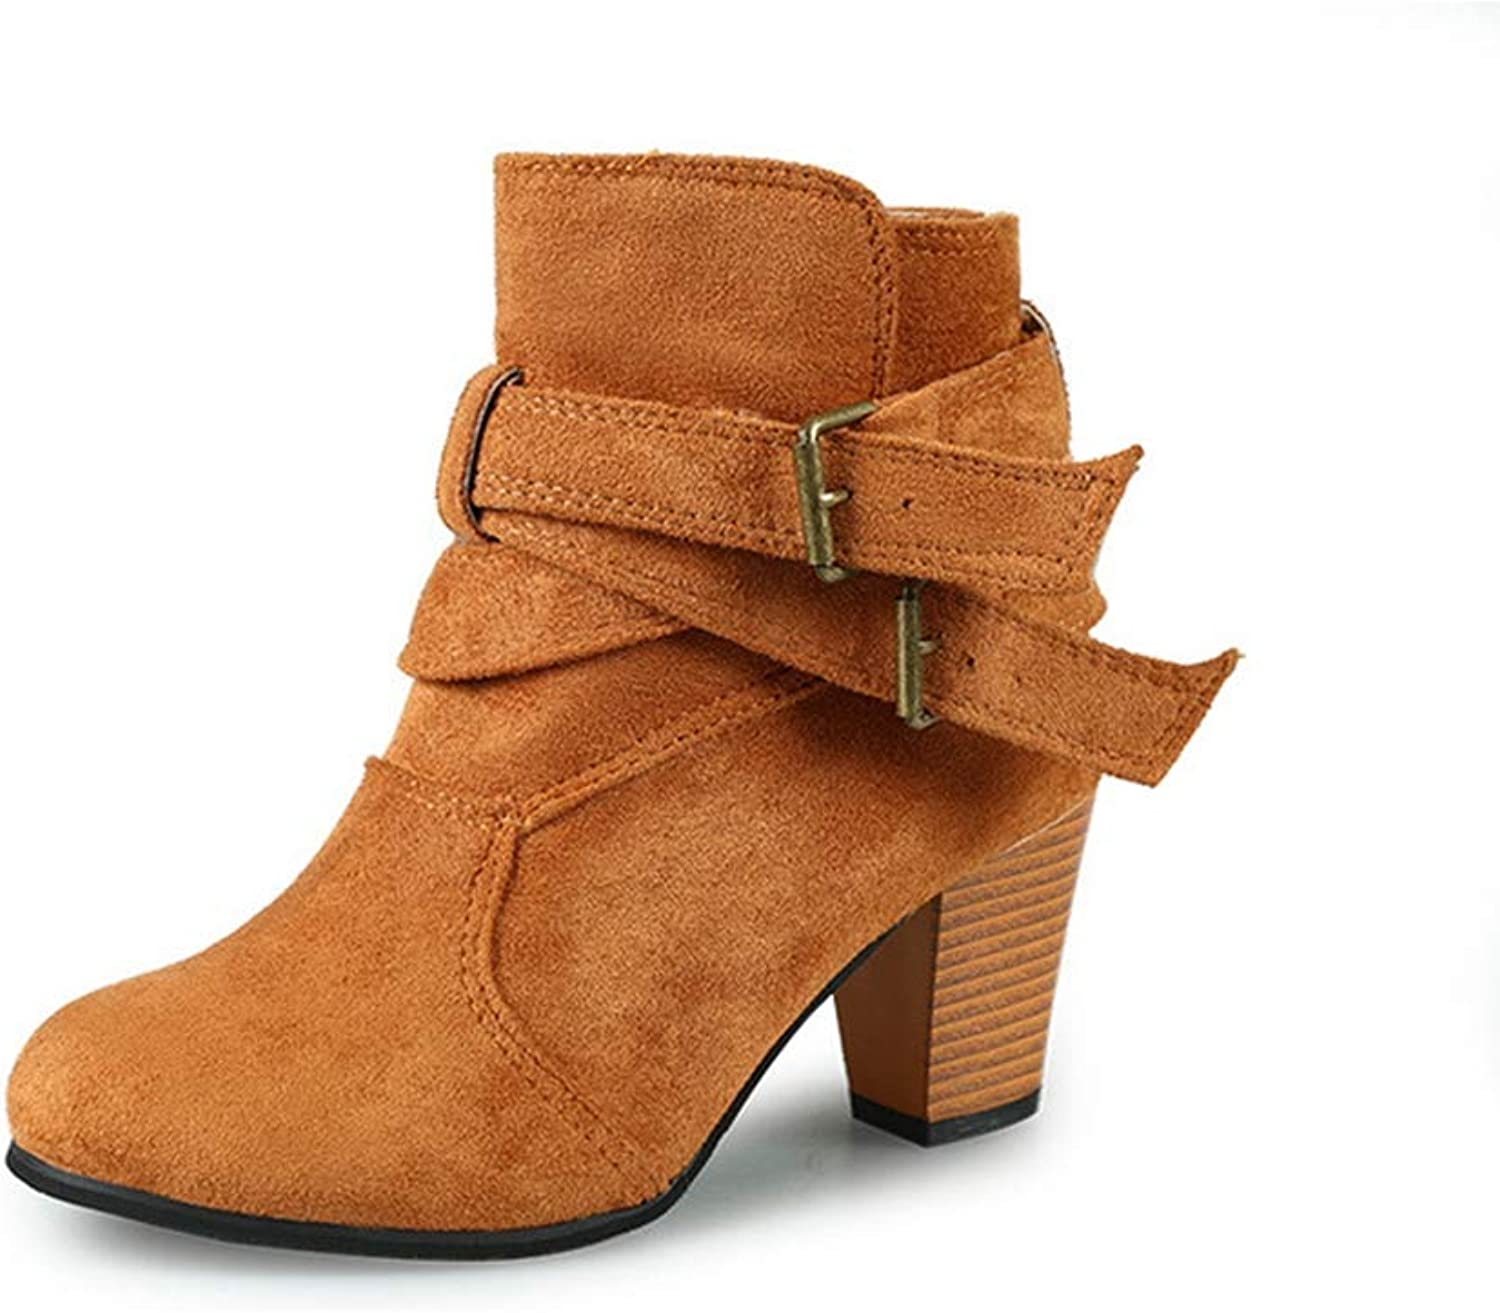 JOYBI Women Fashion Round Toe Ankle Boots Buckle Strap Slip On Ladies Chunky Stacked High Heel Short Boot